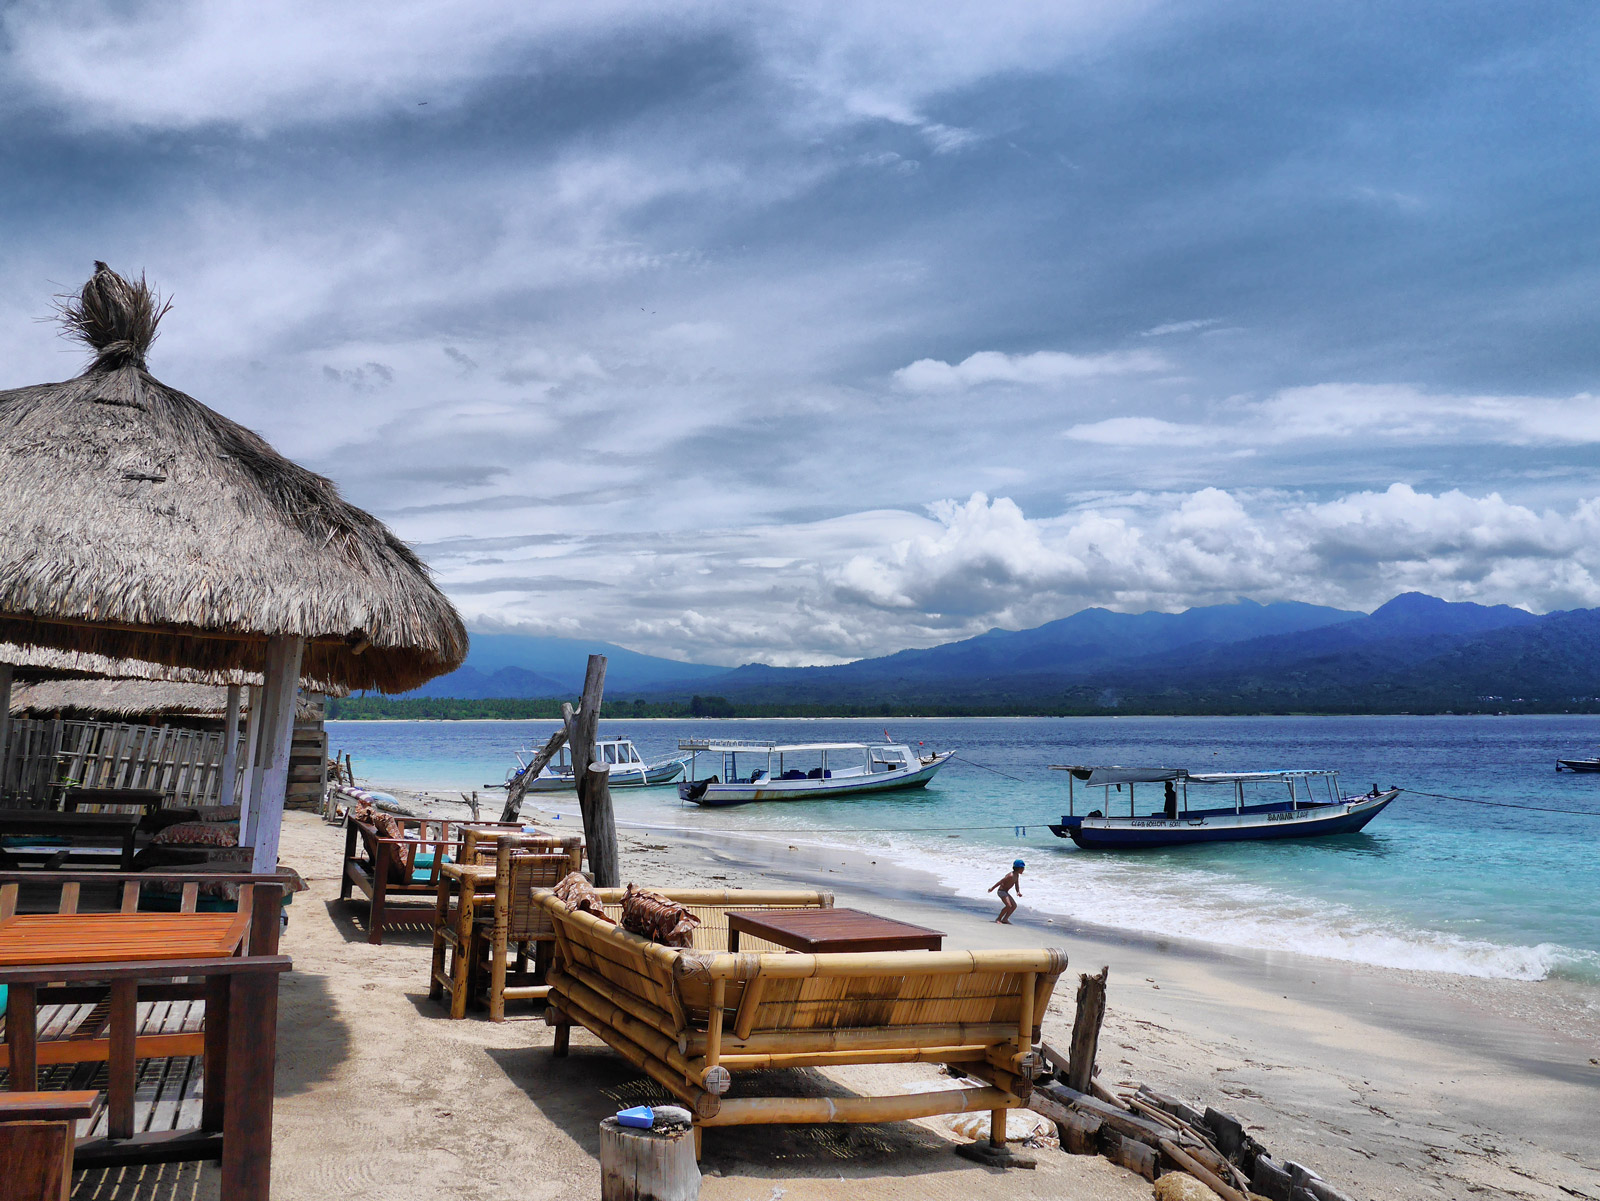 Lunch at the Beach on Gili Air After Snorkelling - Lombok & The Gili Islands, Indonesia